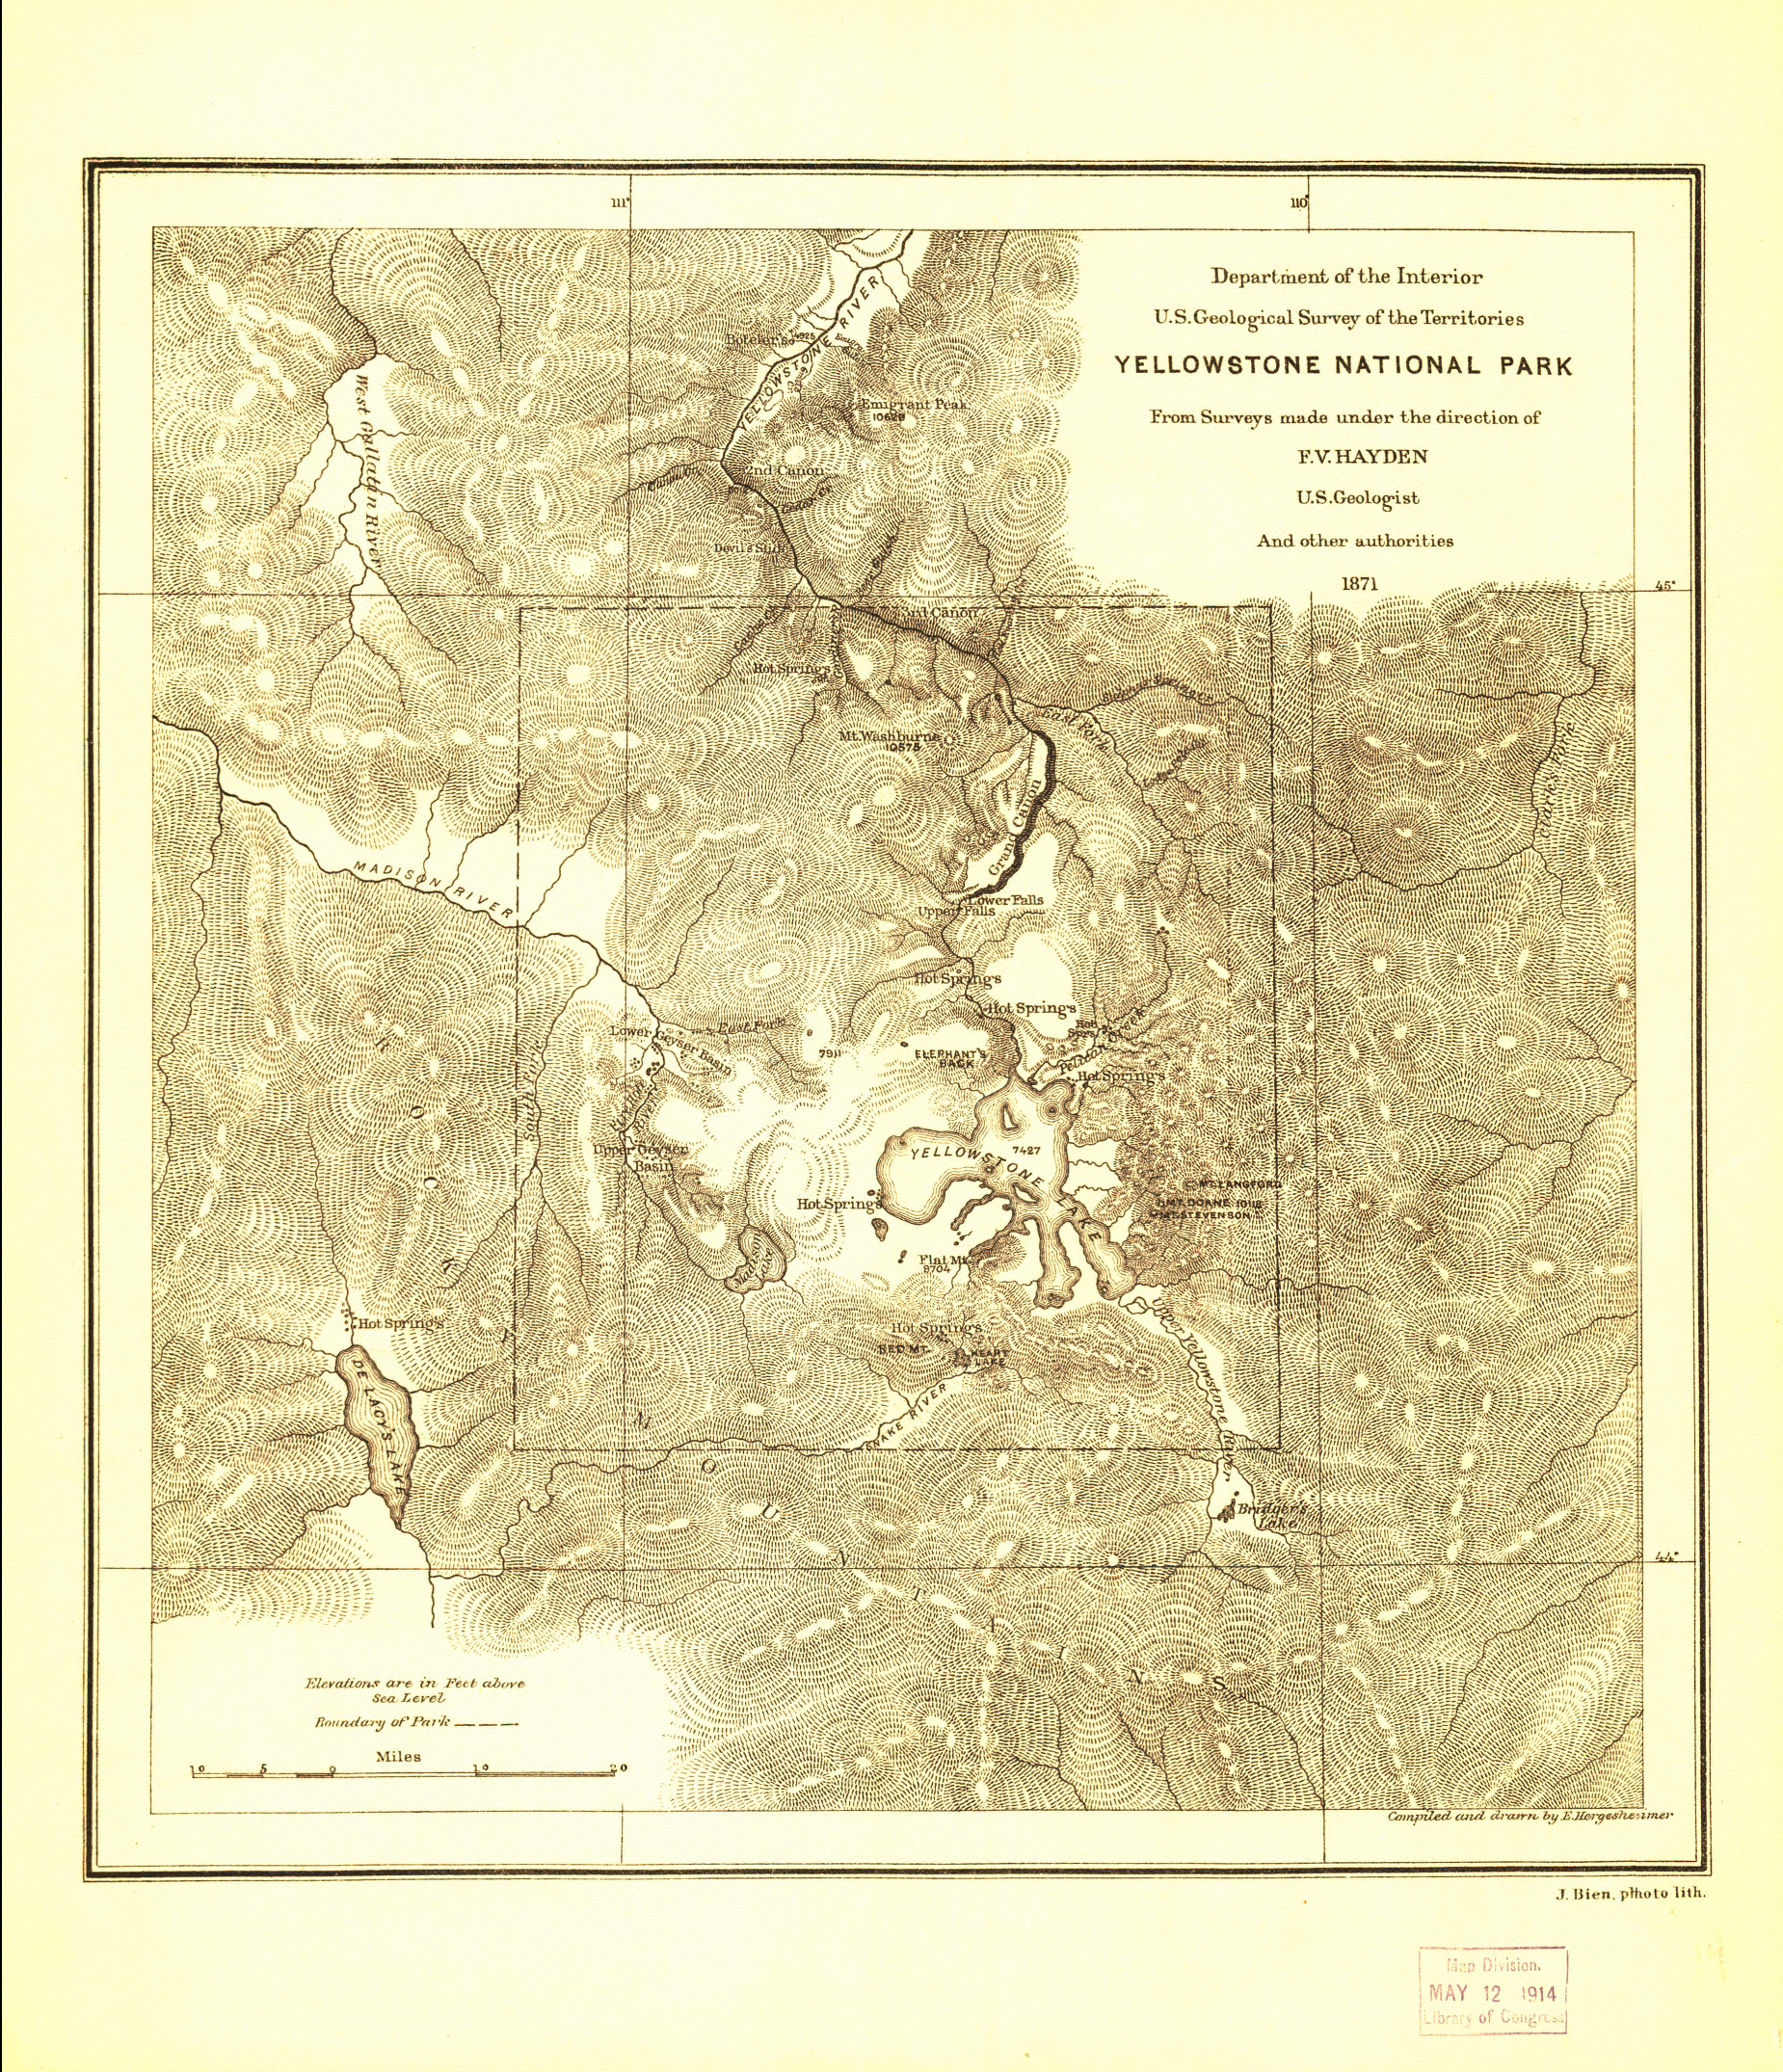 Yellowstone National Park 1871 Hayden Map from the Library of Congress Collection